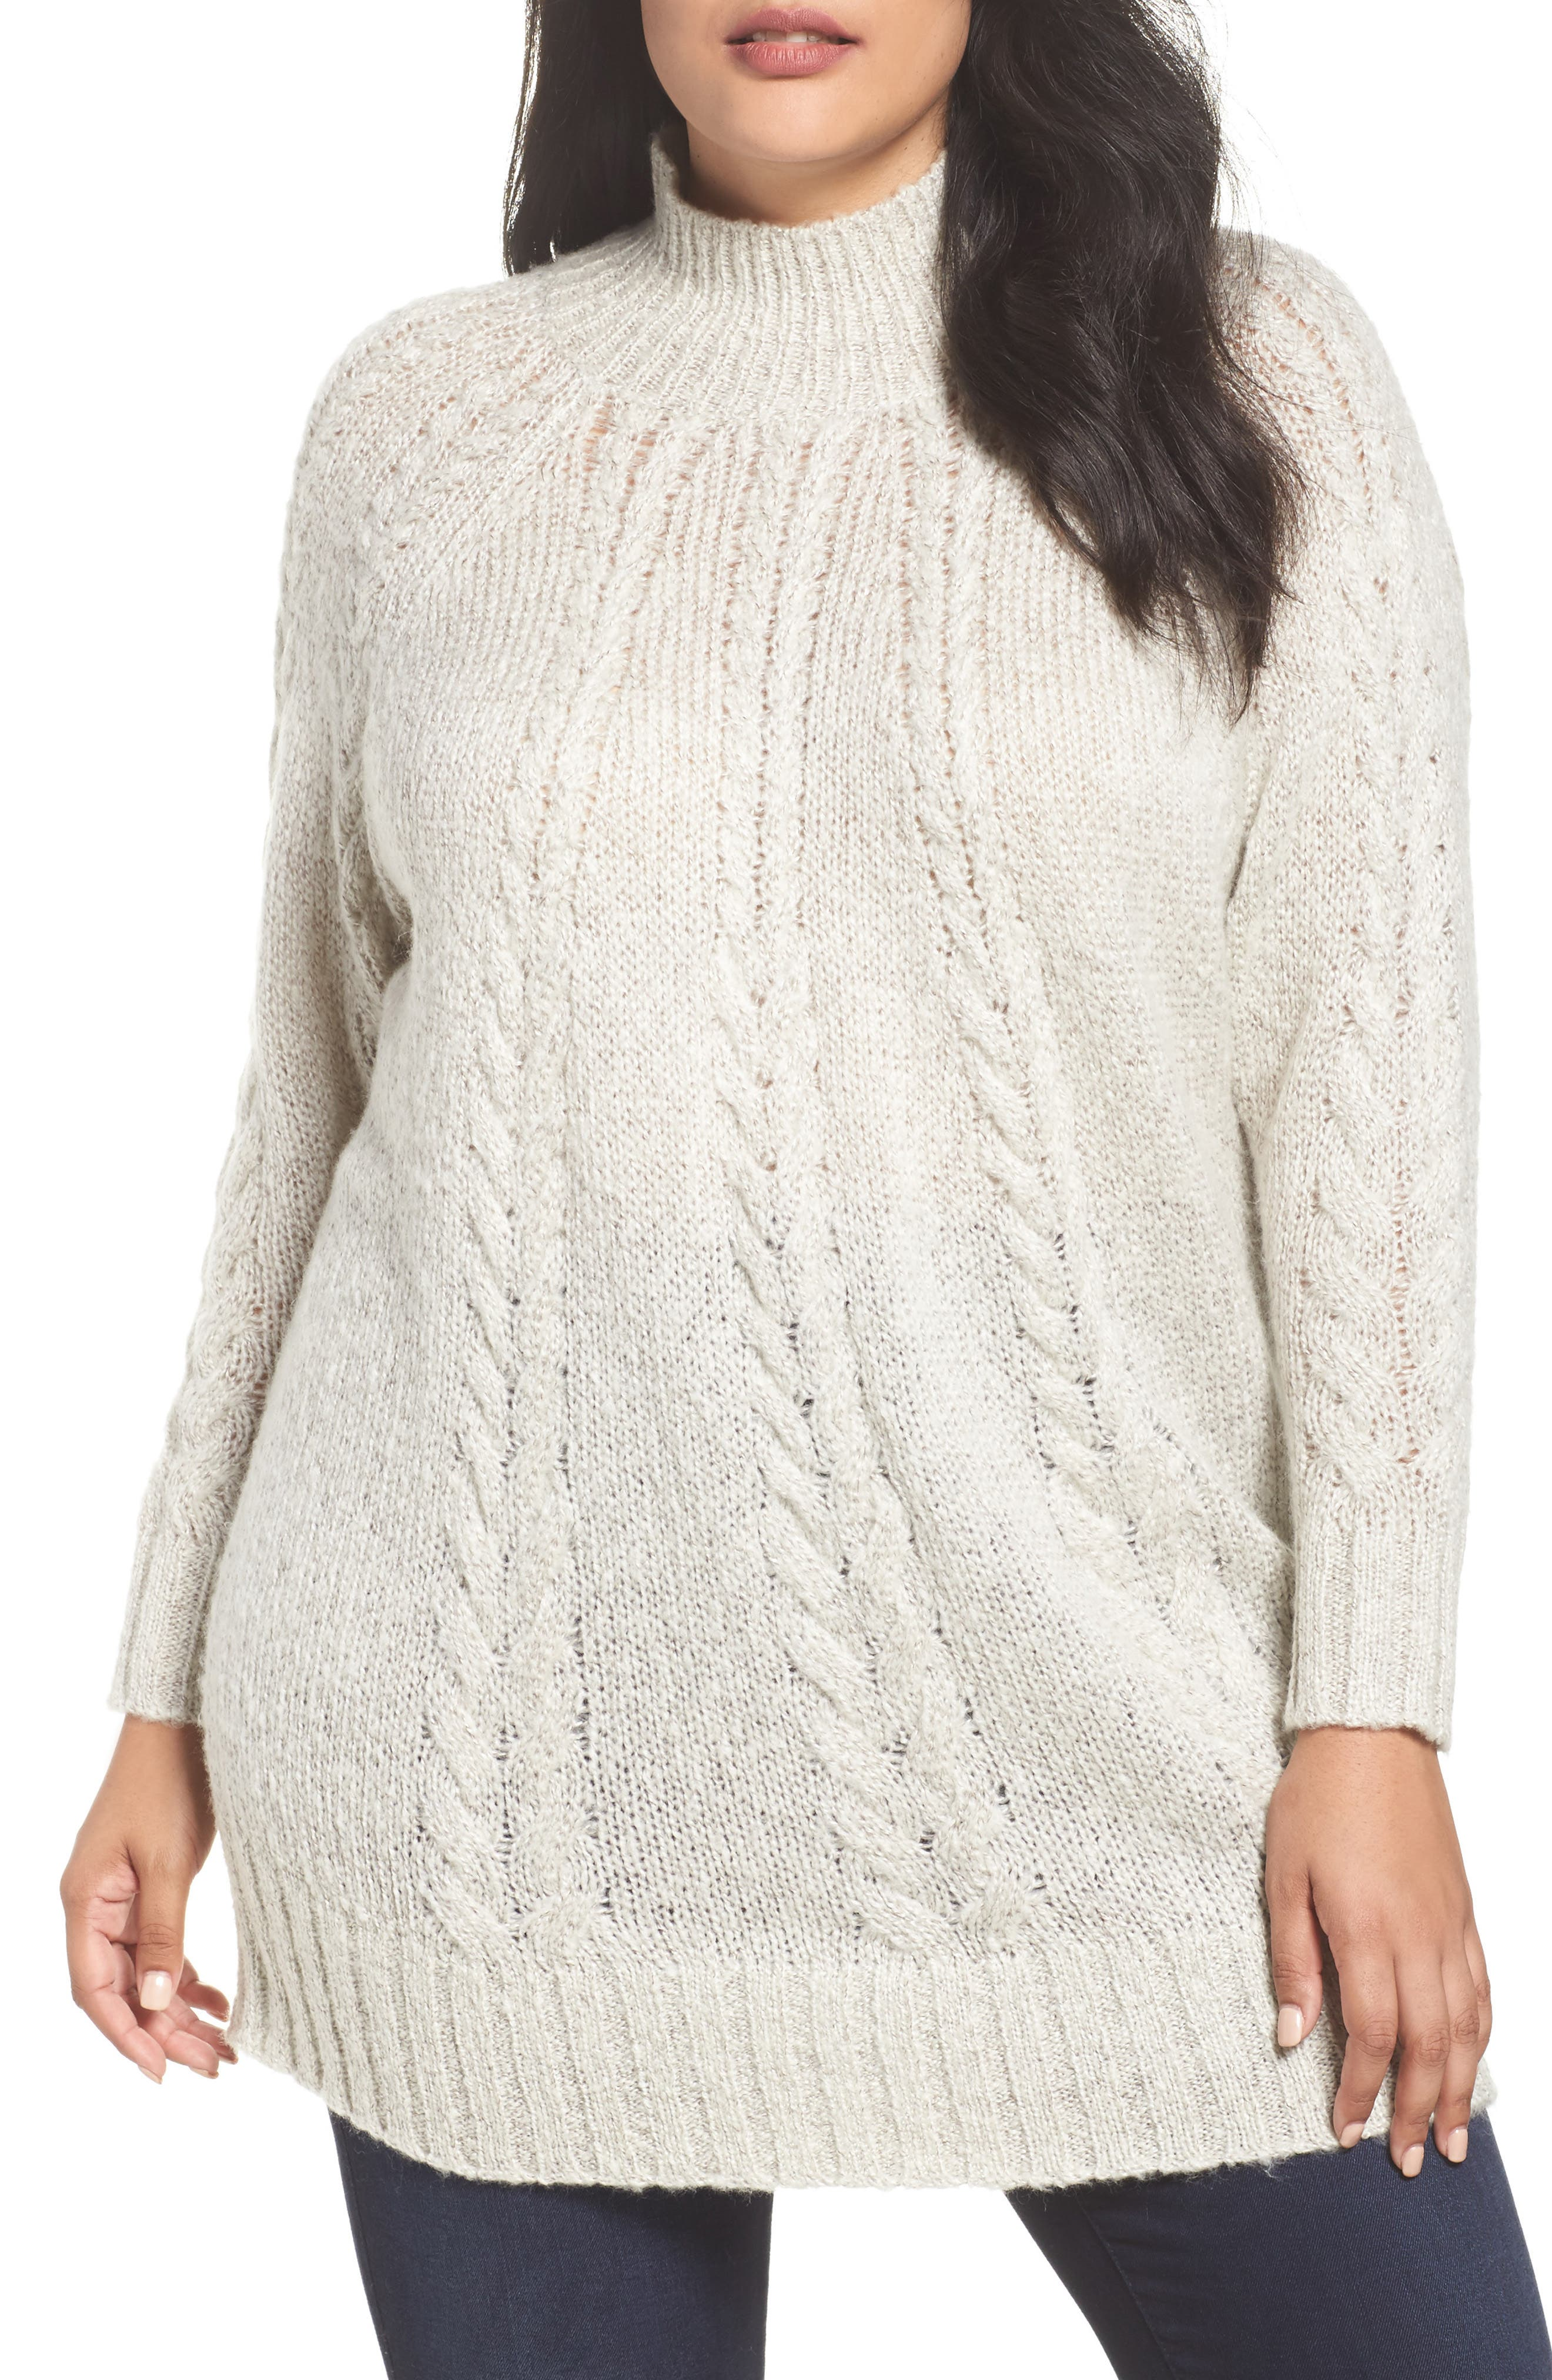 Cable Knit Tunic Sweater,                         Main,                         color, BEIGE OATMEAL LIGHT HEATHER